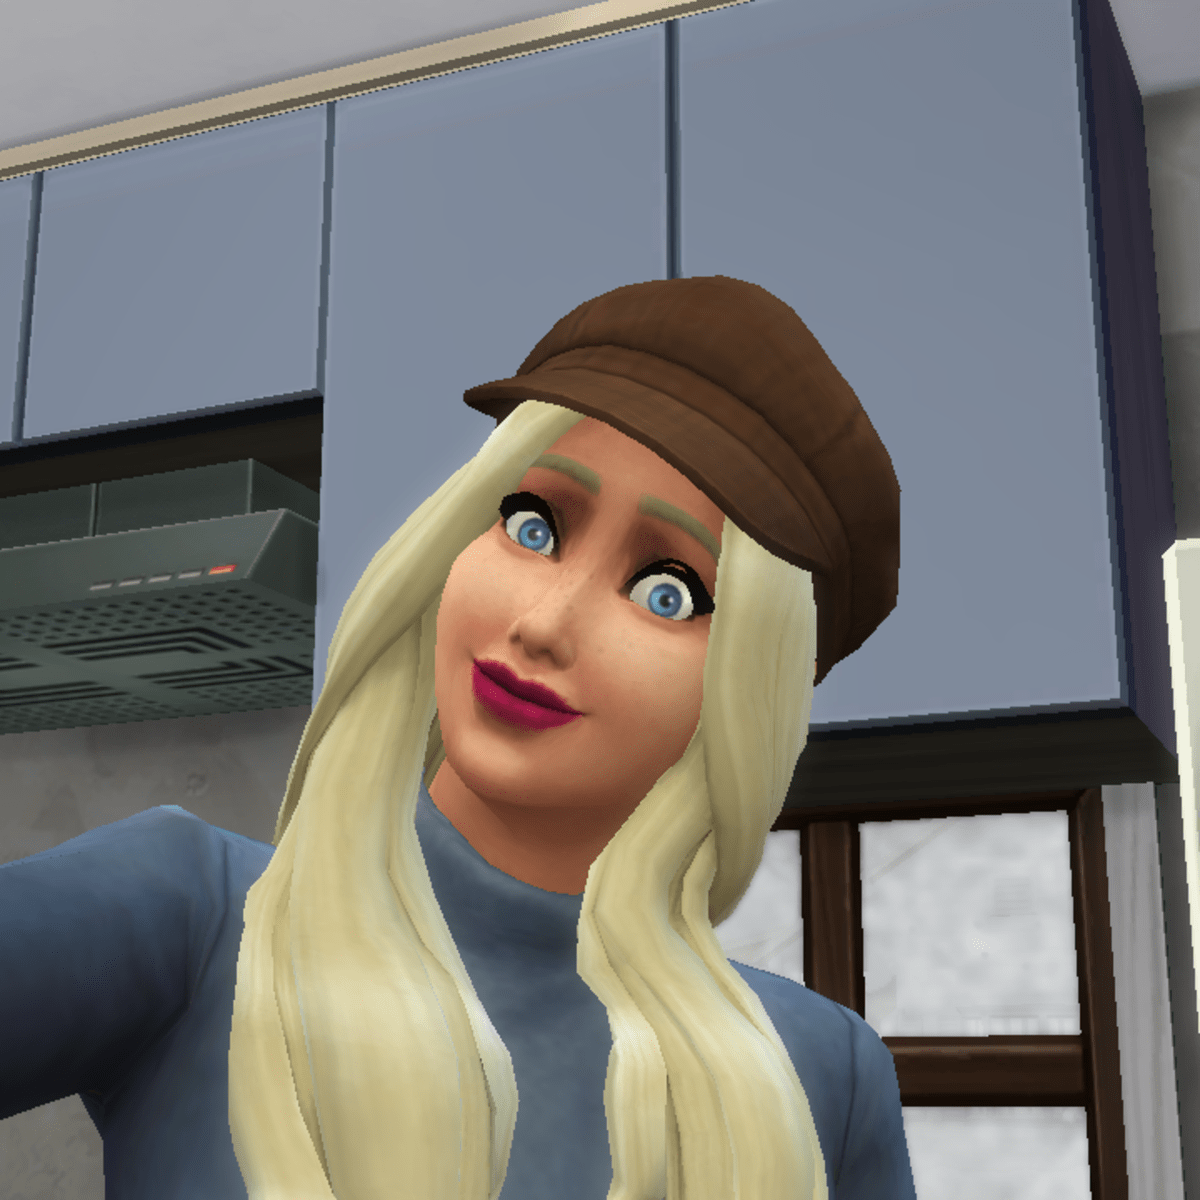 The Sims 4 Five Traits That Are A Wasted Choice Levelskip Video Games